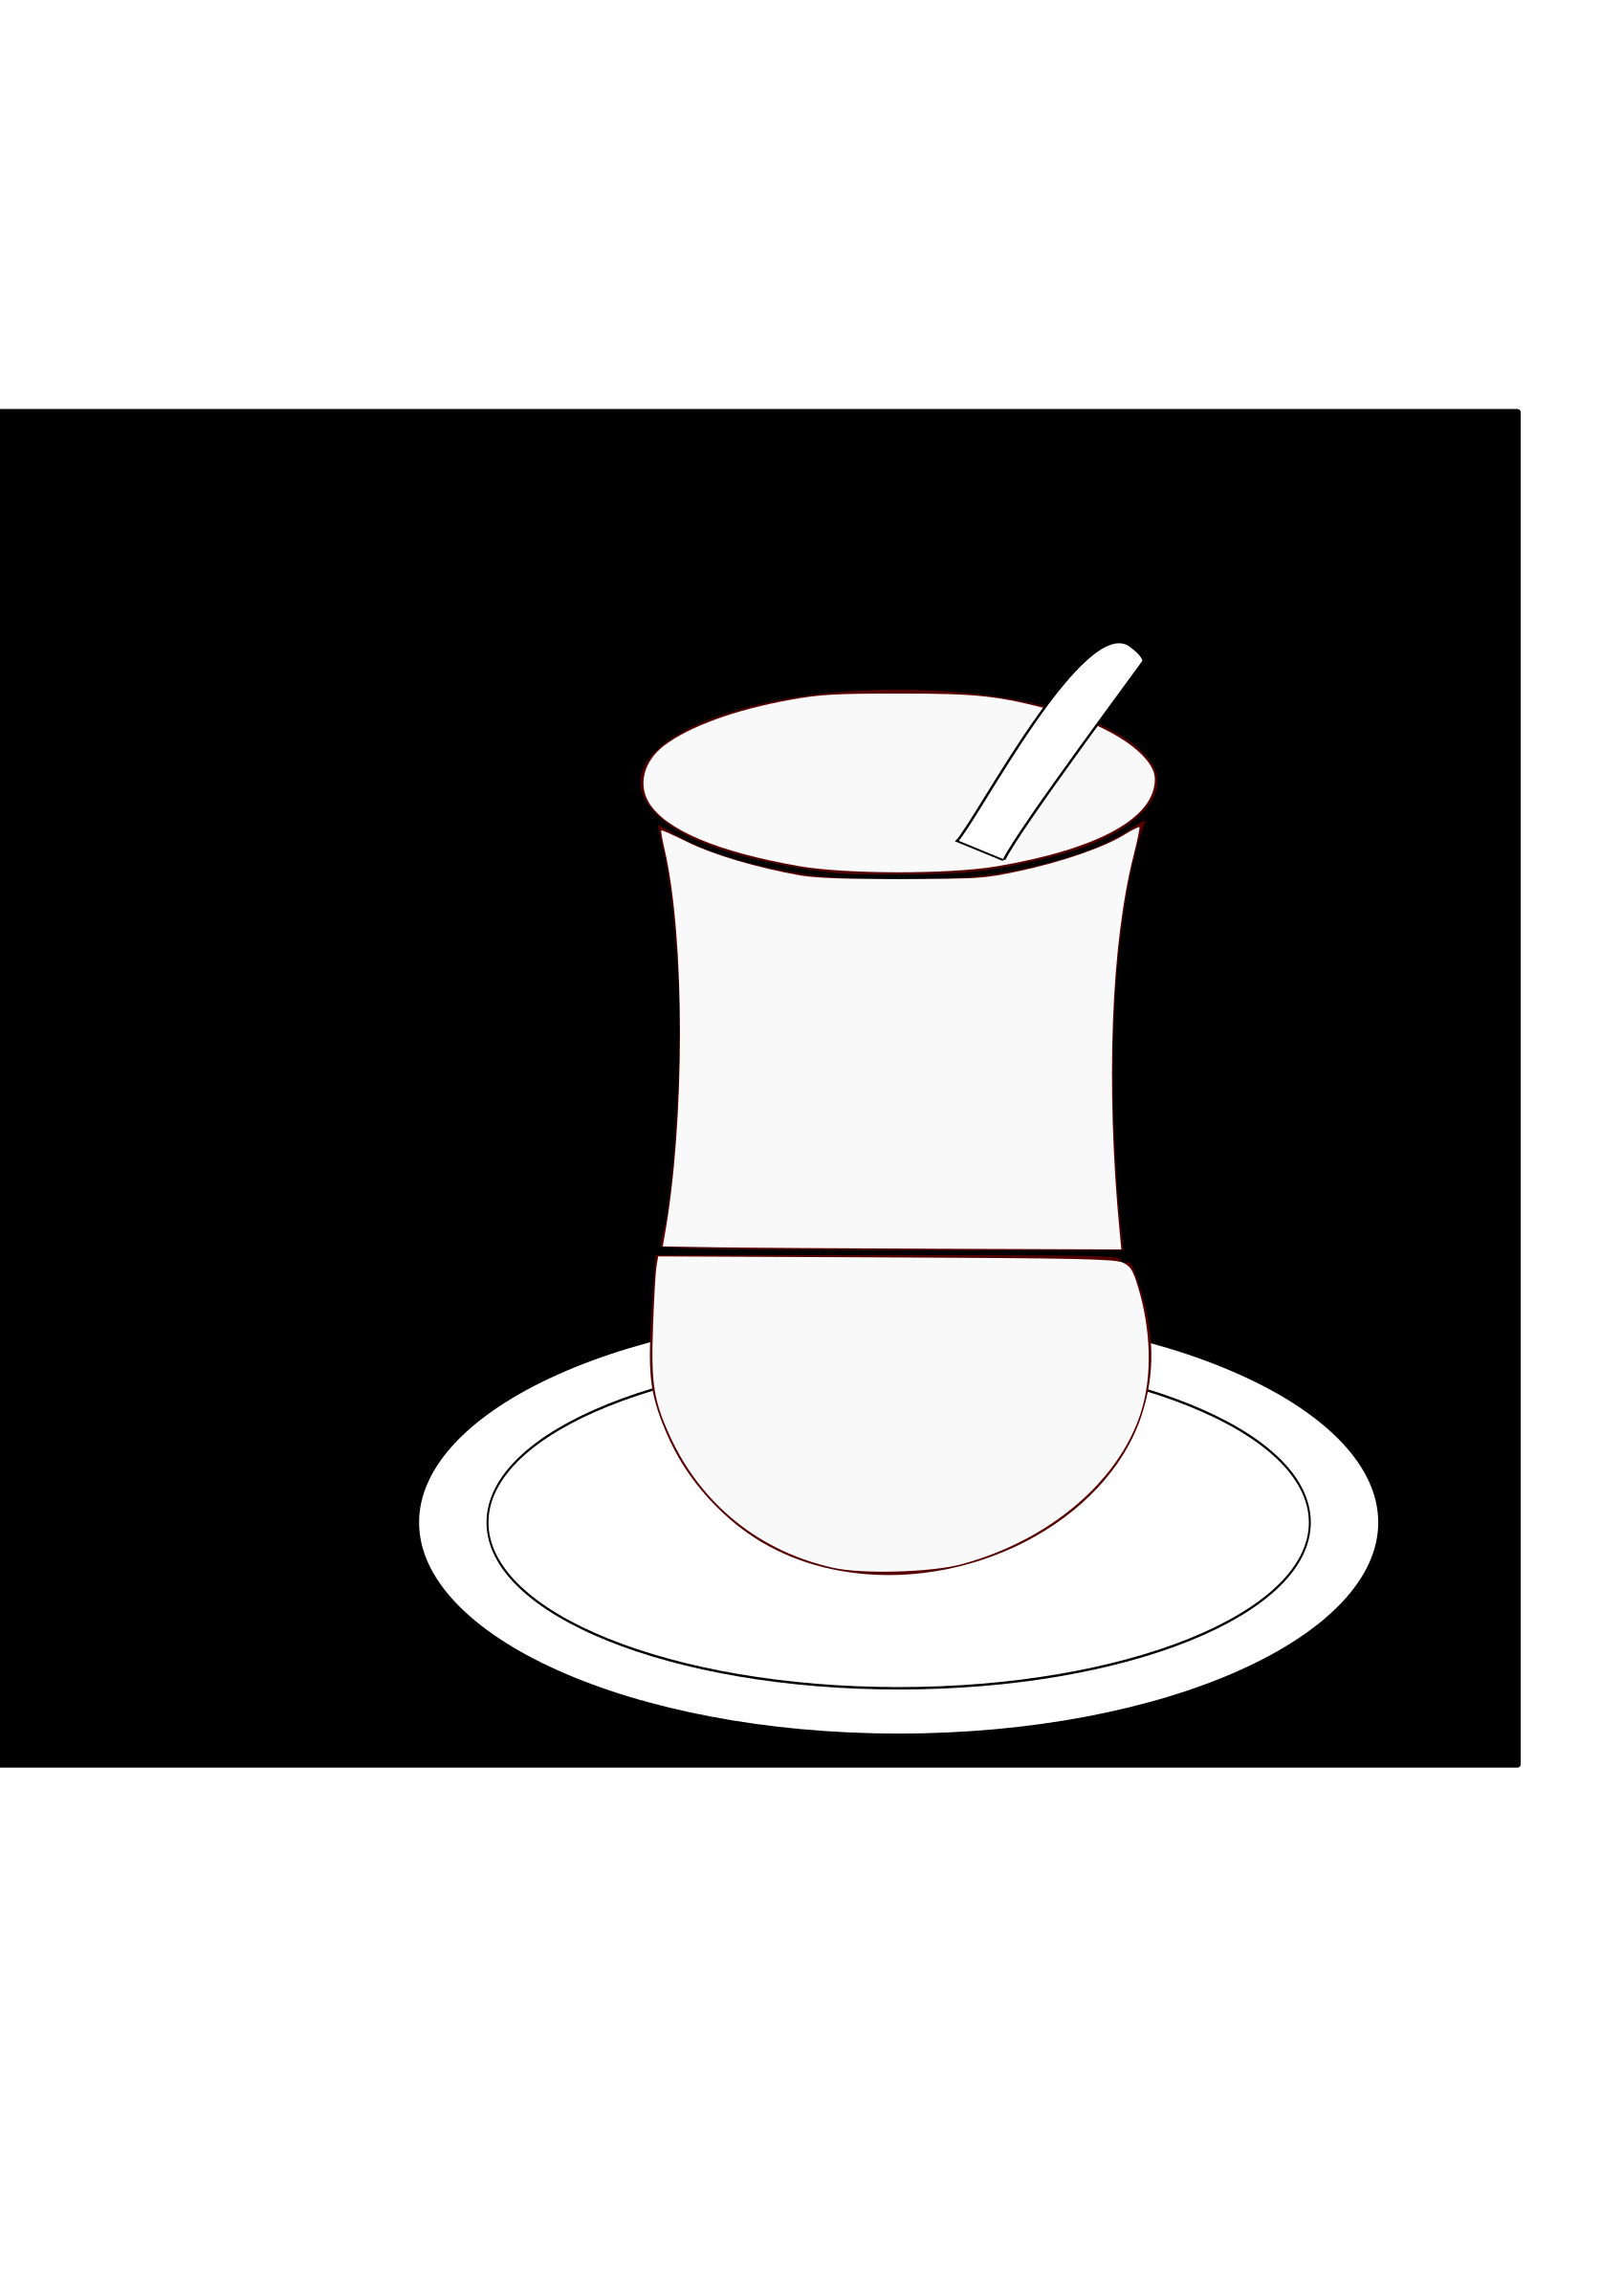 Cup and Saucer by athithya